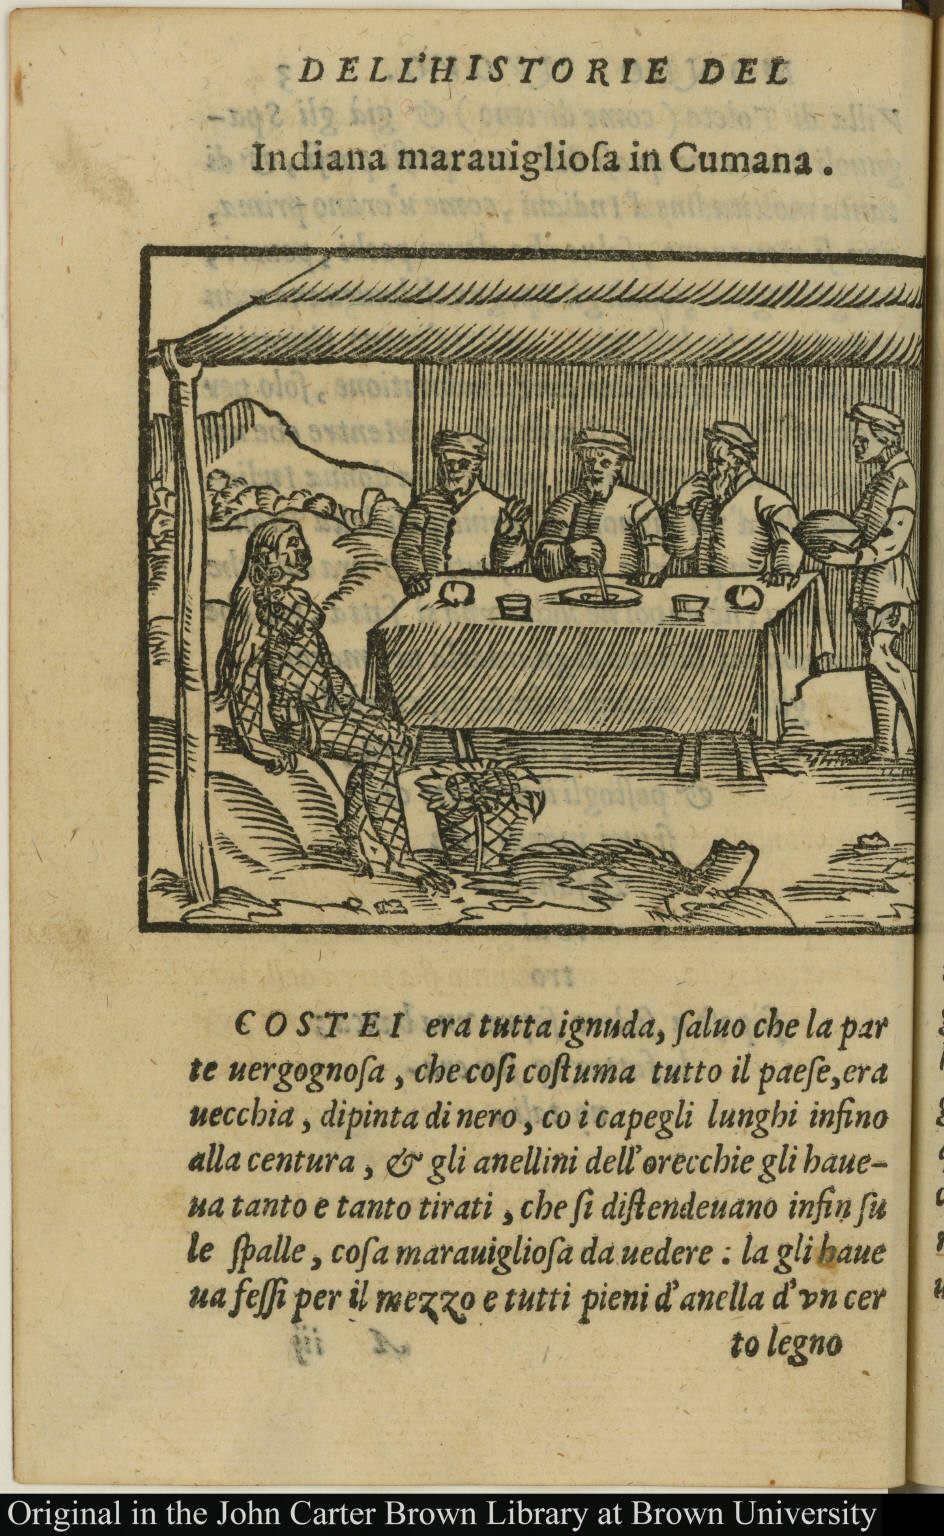 Indiana marauigliosa in Cumana - JCB Archive of Early American Images